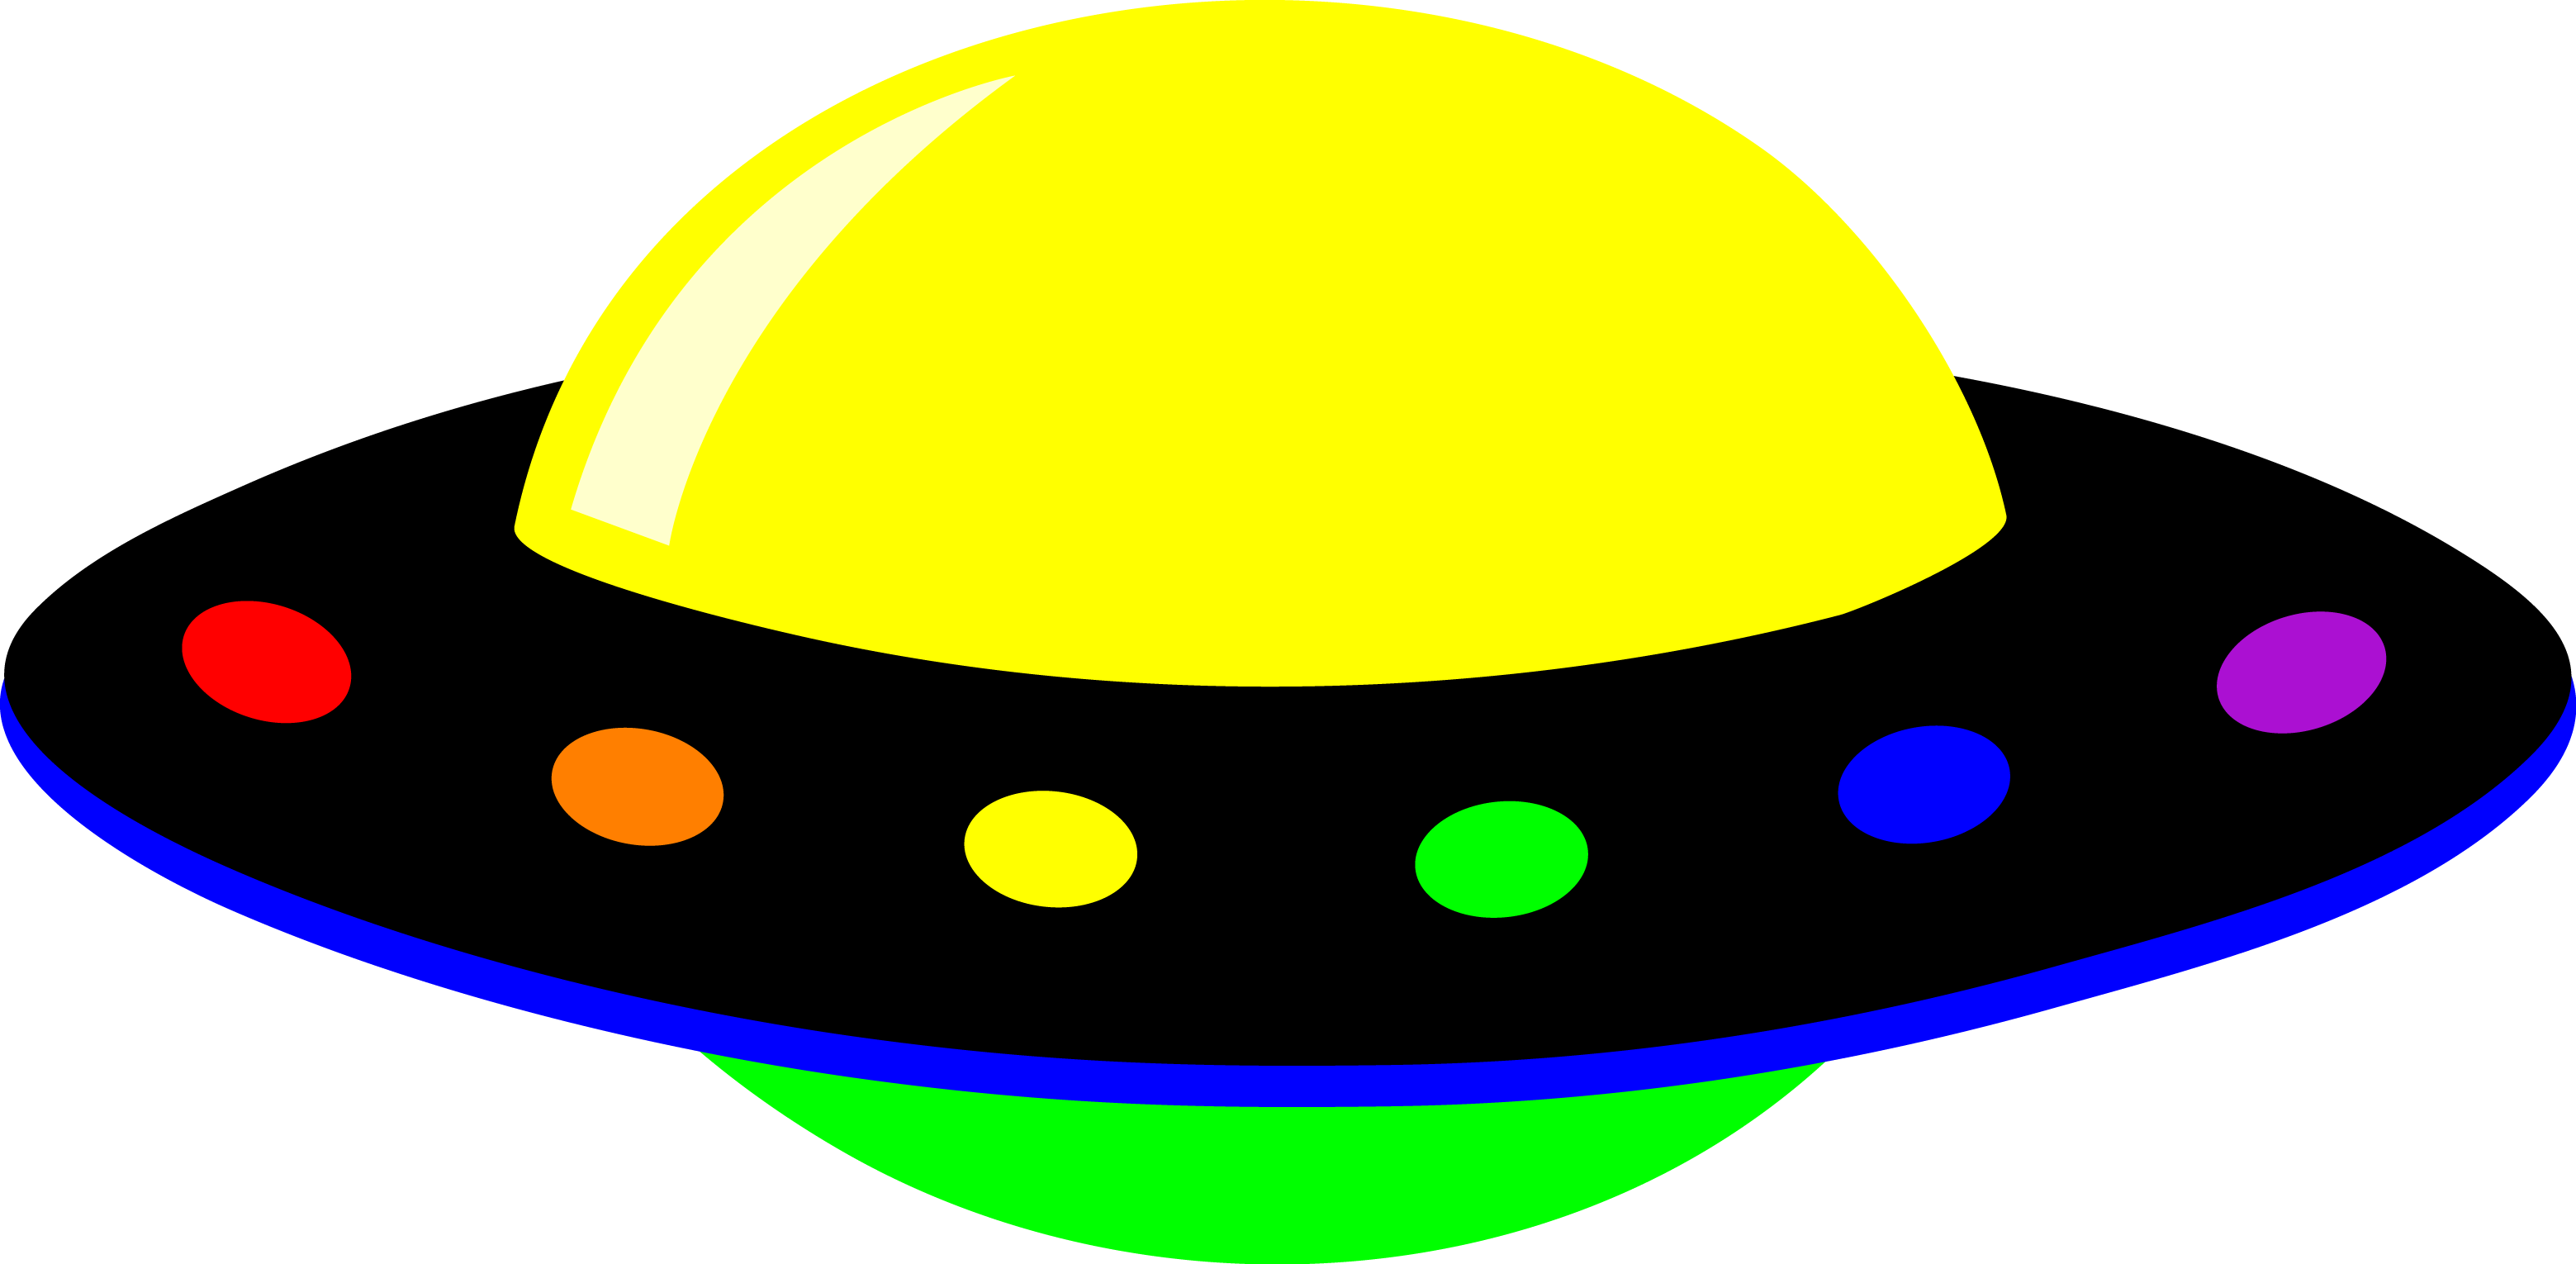 Sci Fi clipart cute alien spaceship #3